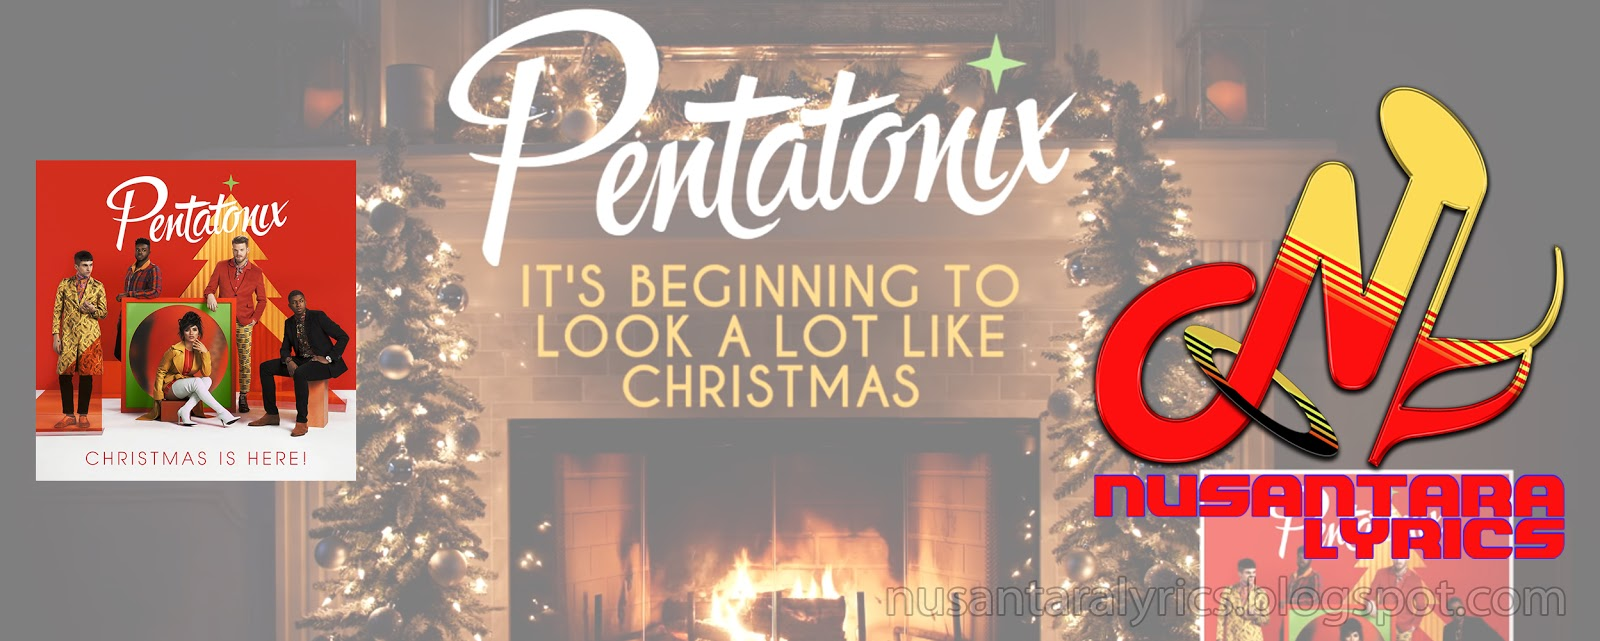 Its Beginning To Look A Lot Like Christmas Lyrics.Pentatonix It S Beginning To Look A Lot Like Christmas